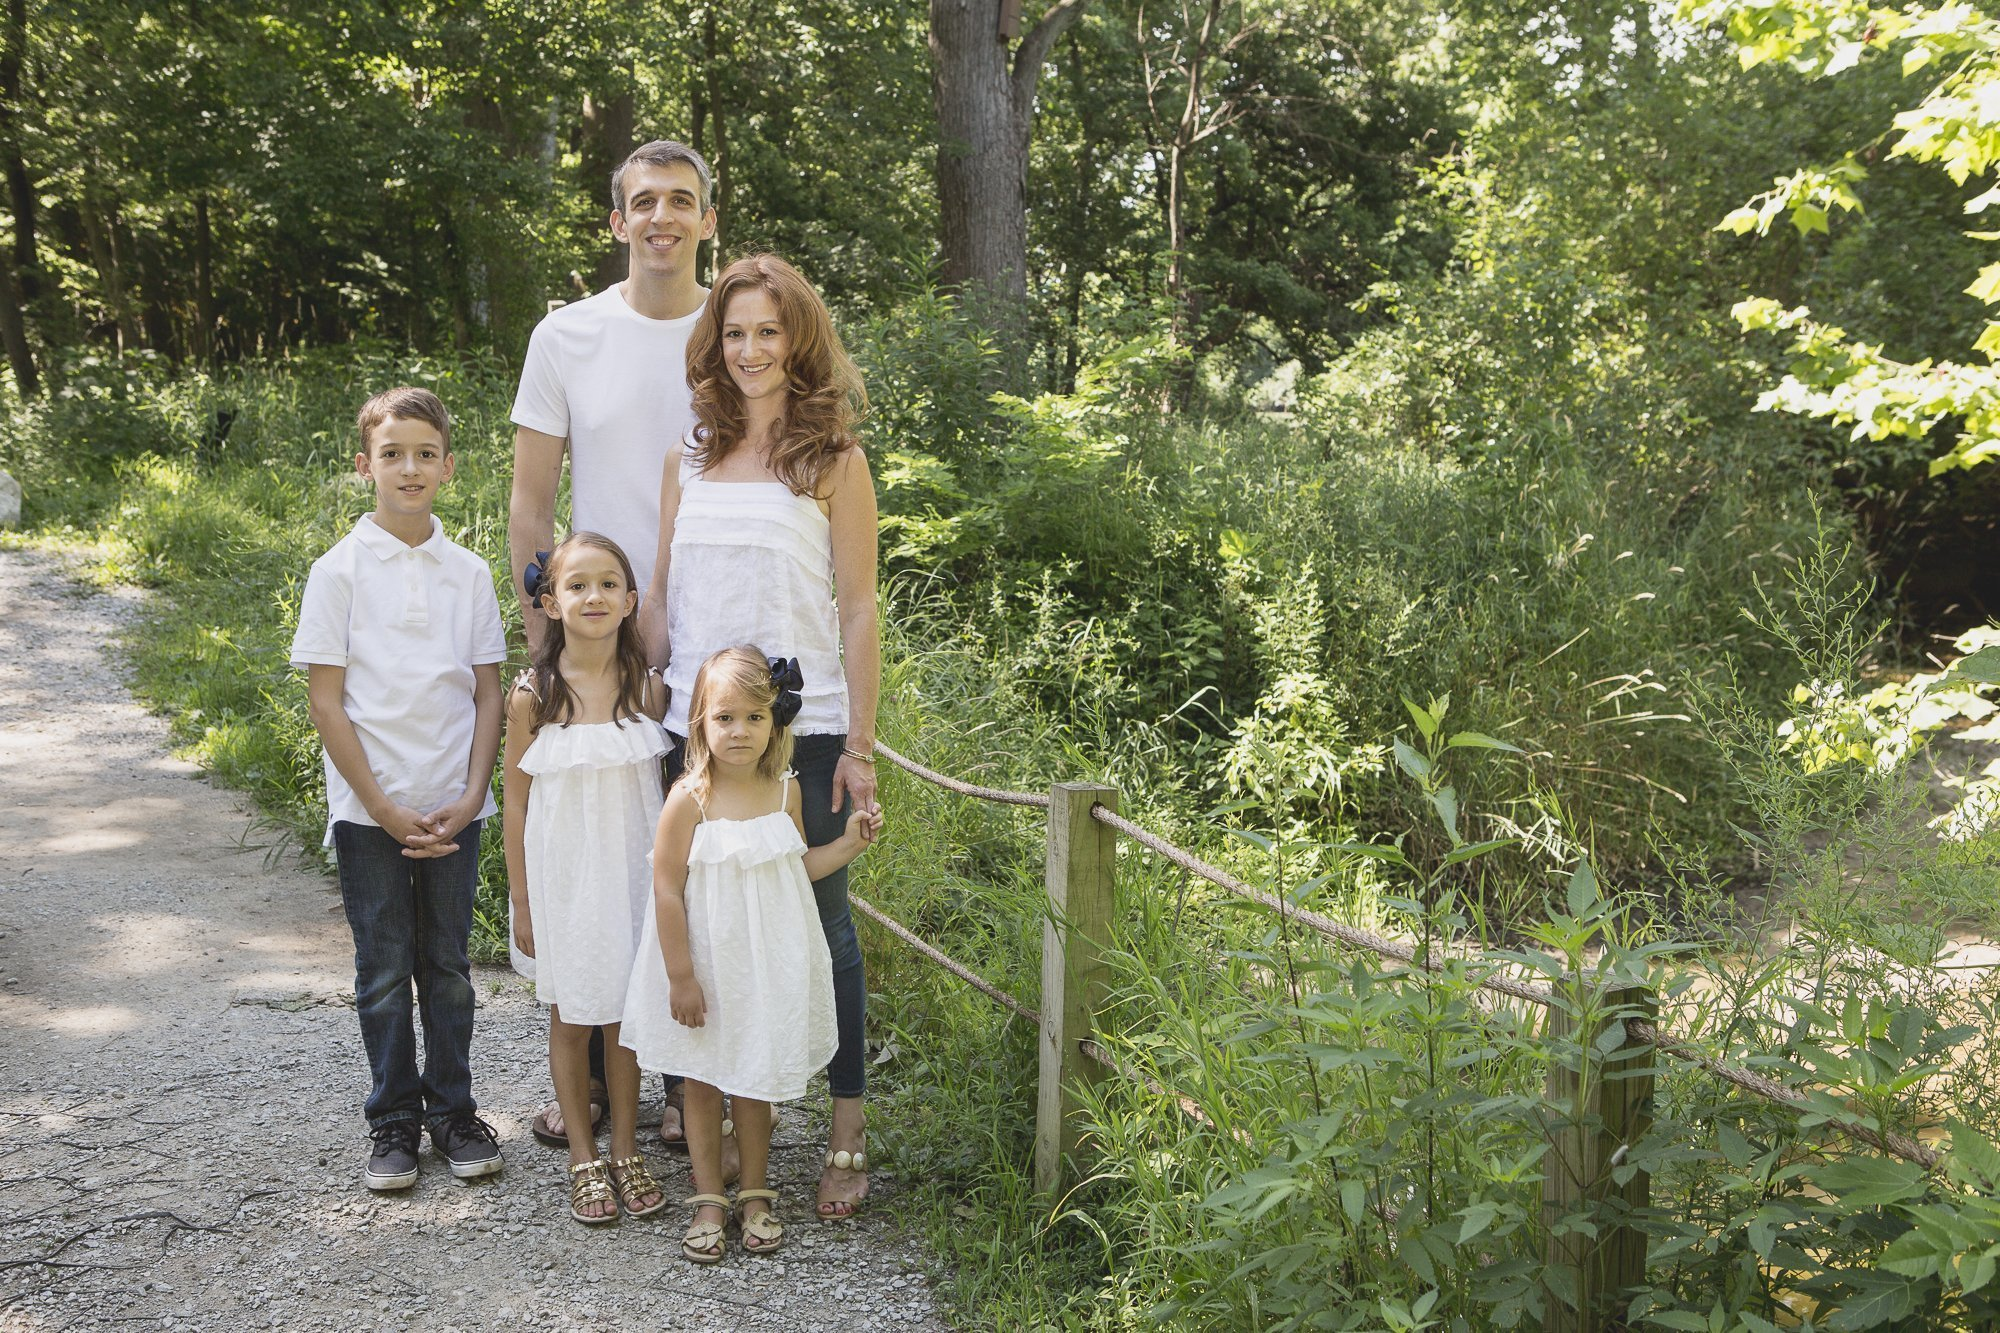 murtagh-family-portrait-photography-indianapolis-7